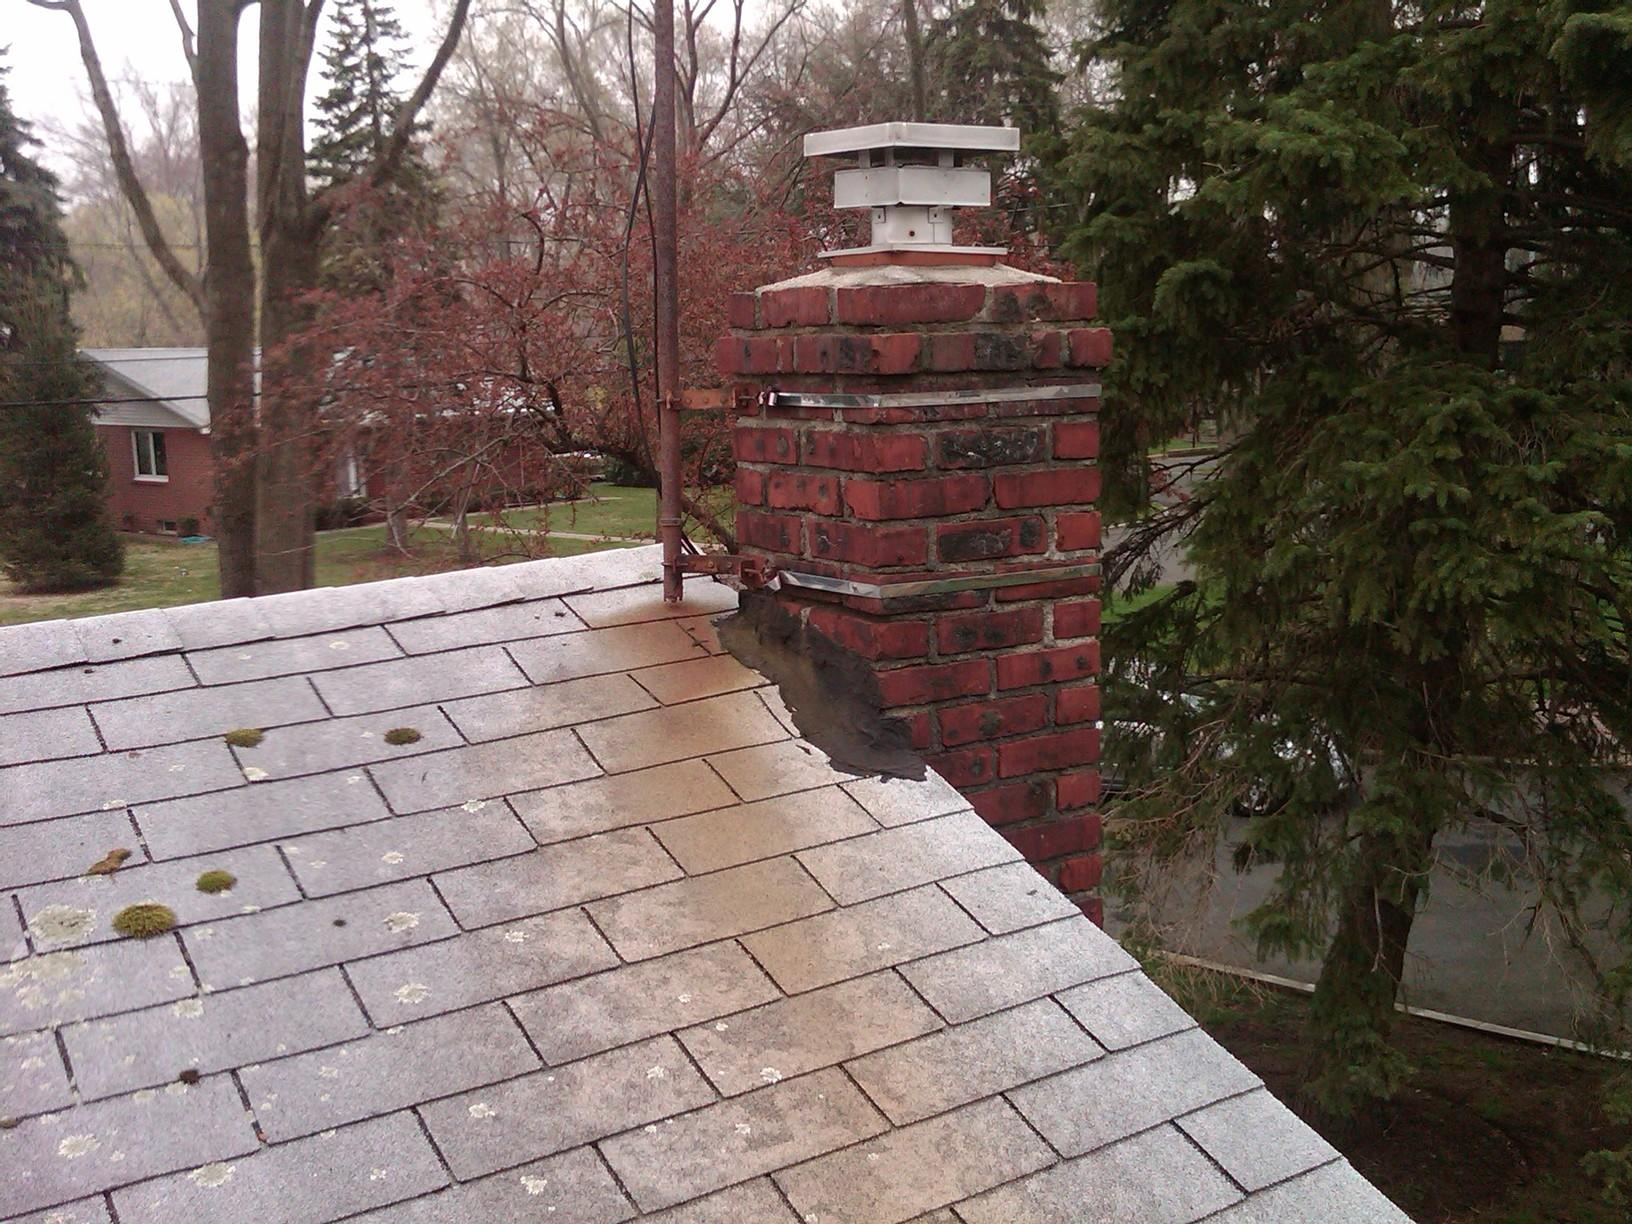 View of Old Chimney Flashing